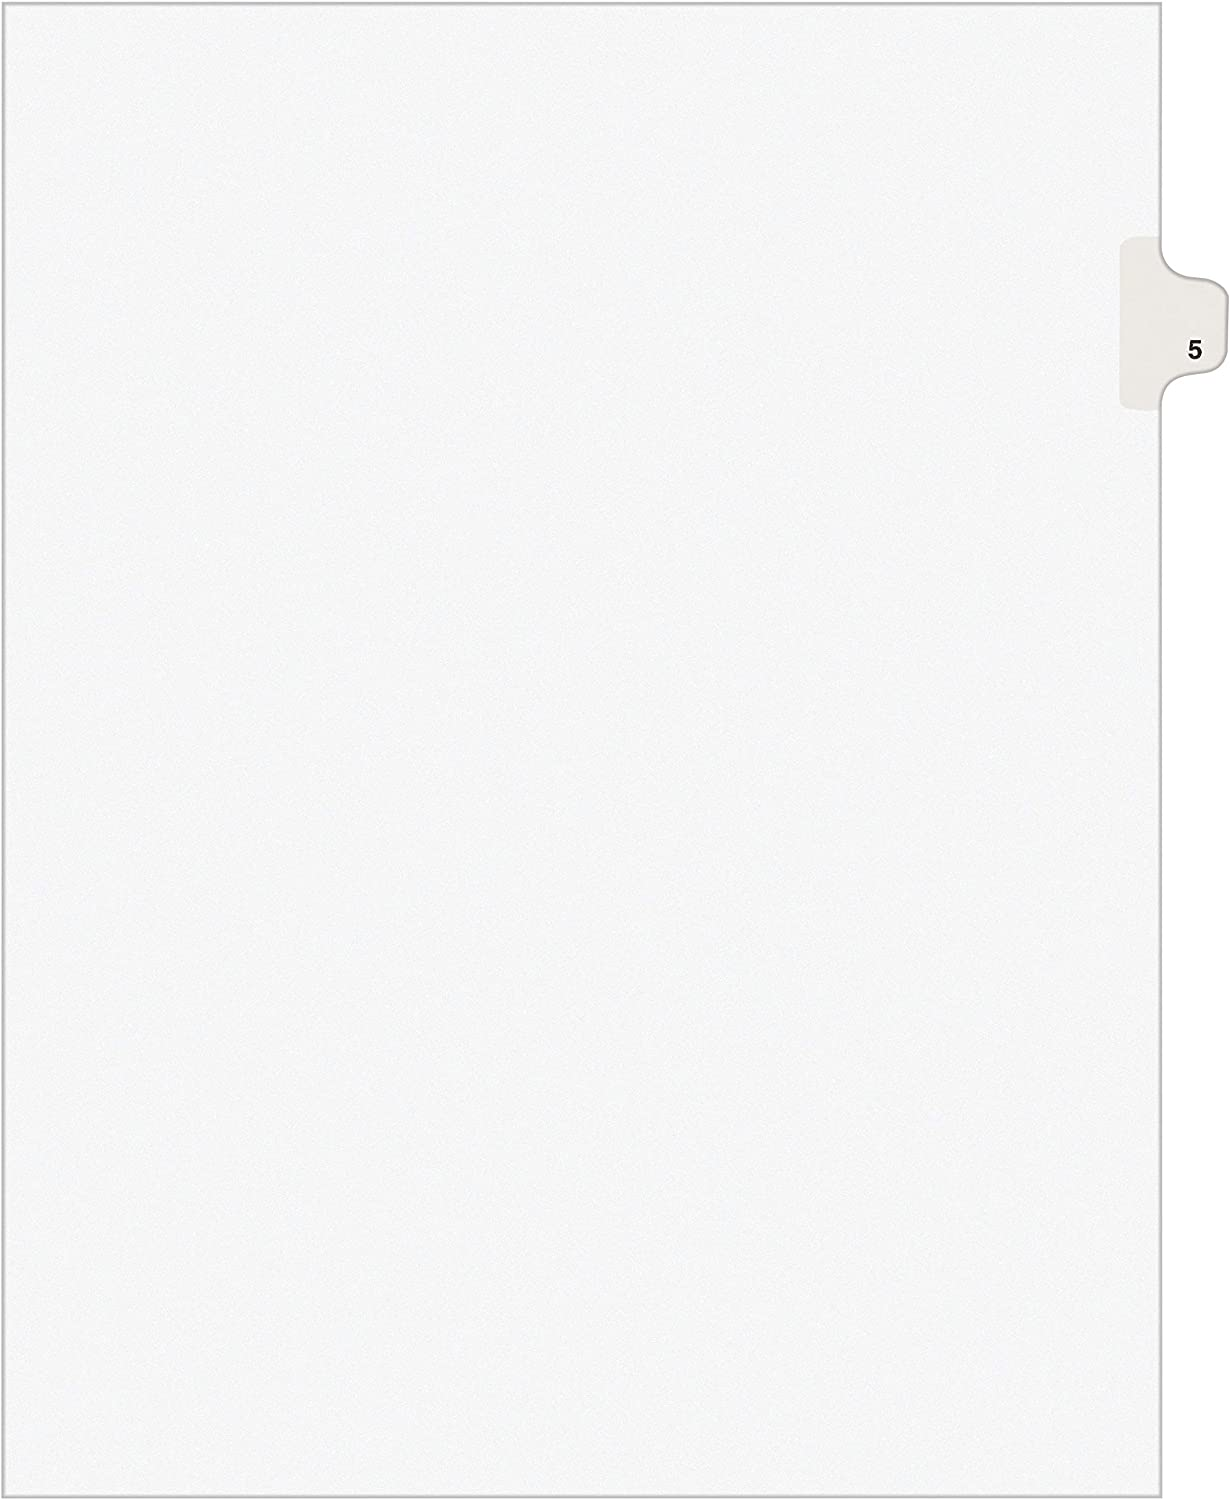 Avery Individual Legal Exhibit Dividers, Avery Style, 5, Side Tab, 8.5 x 11 inches, Pack of 25 (11915), White : Binder Index Dividers : Office Products